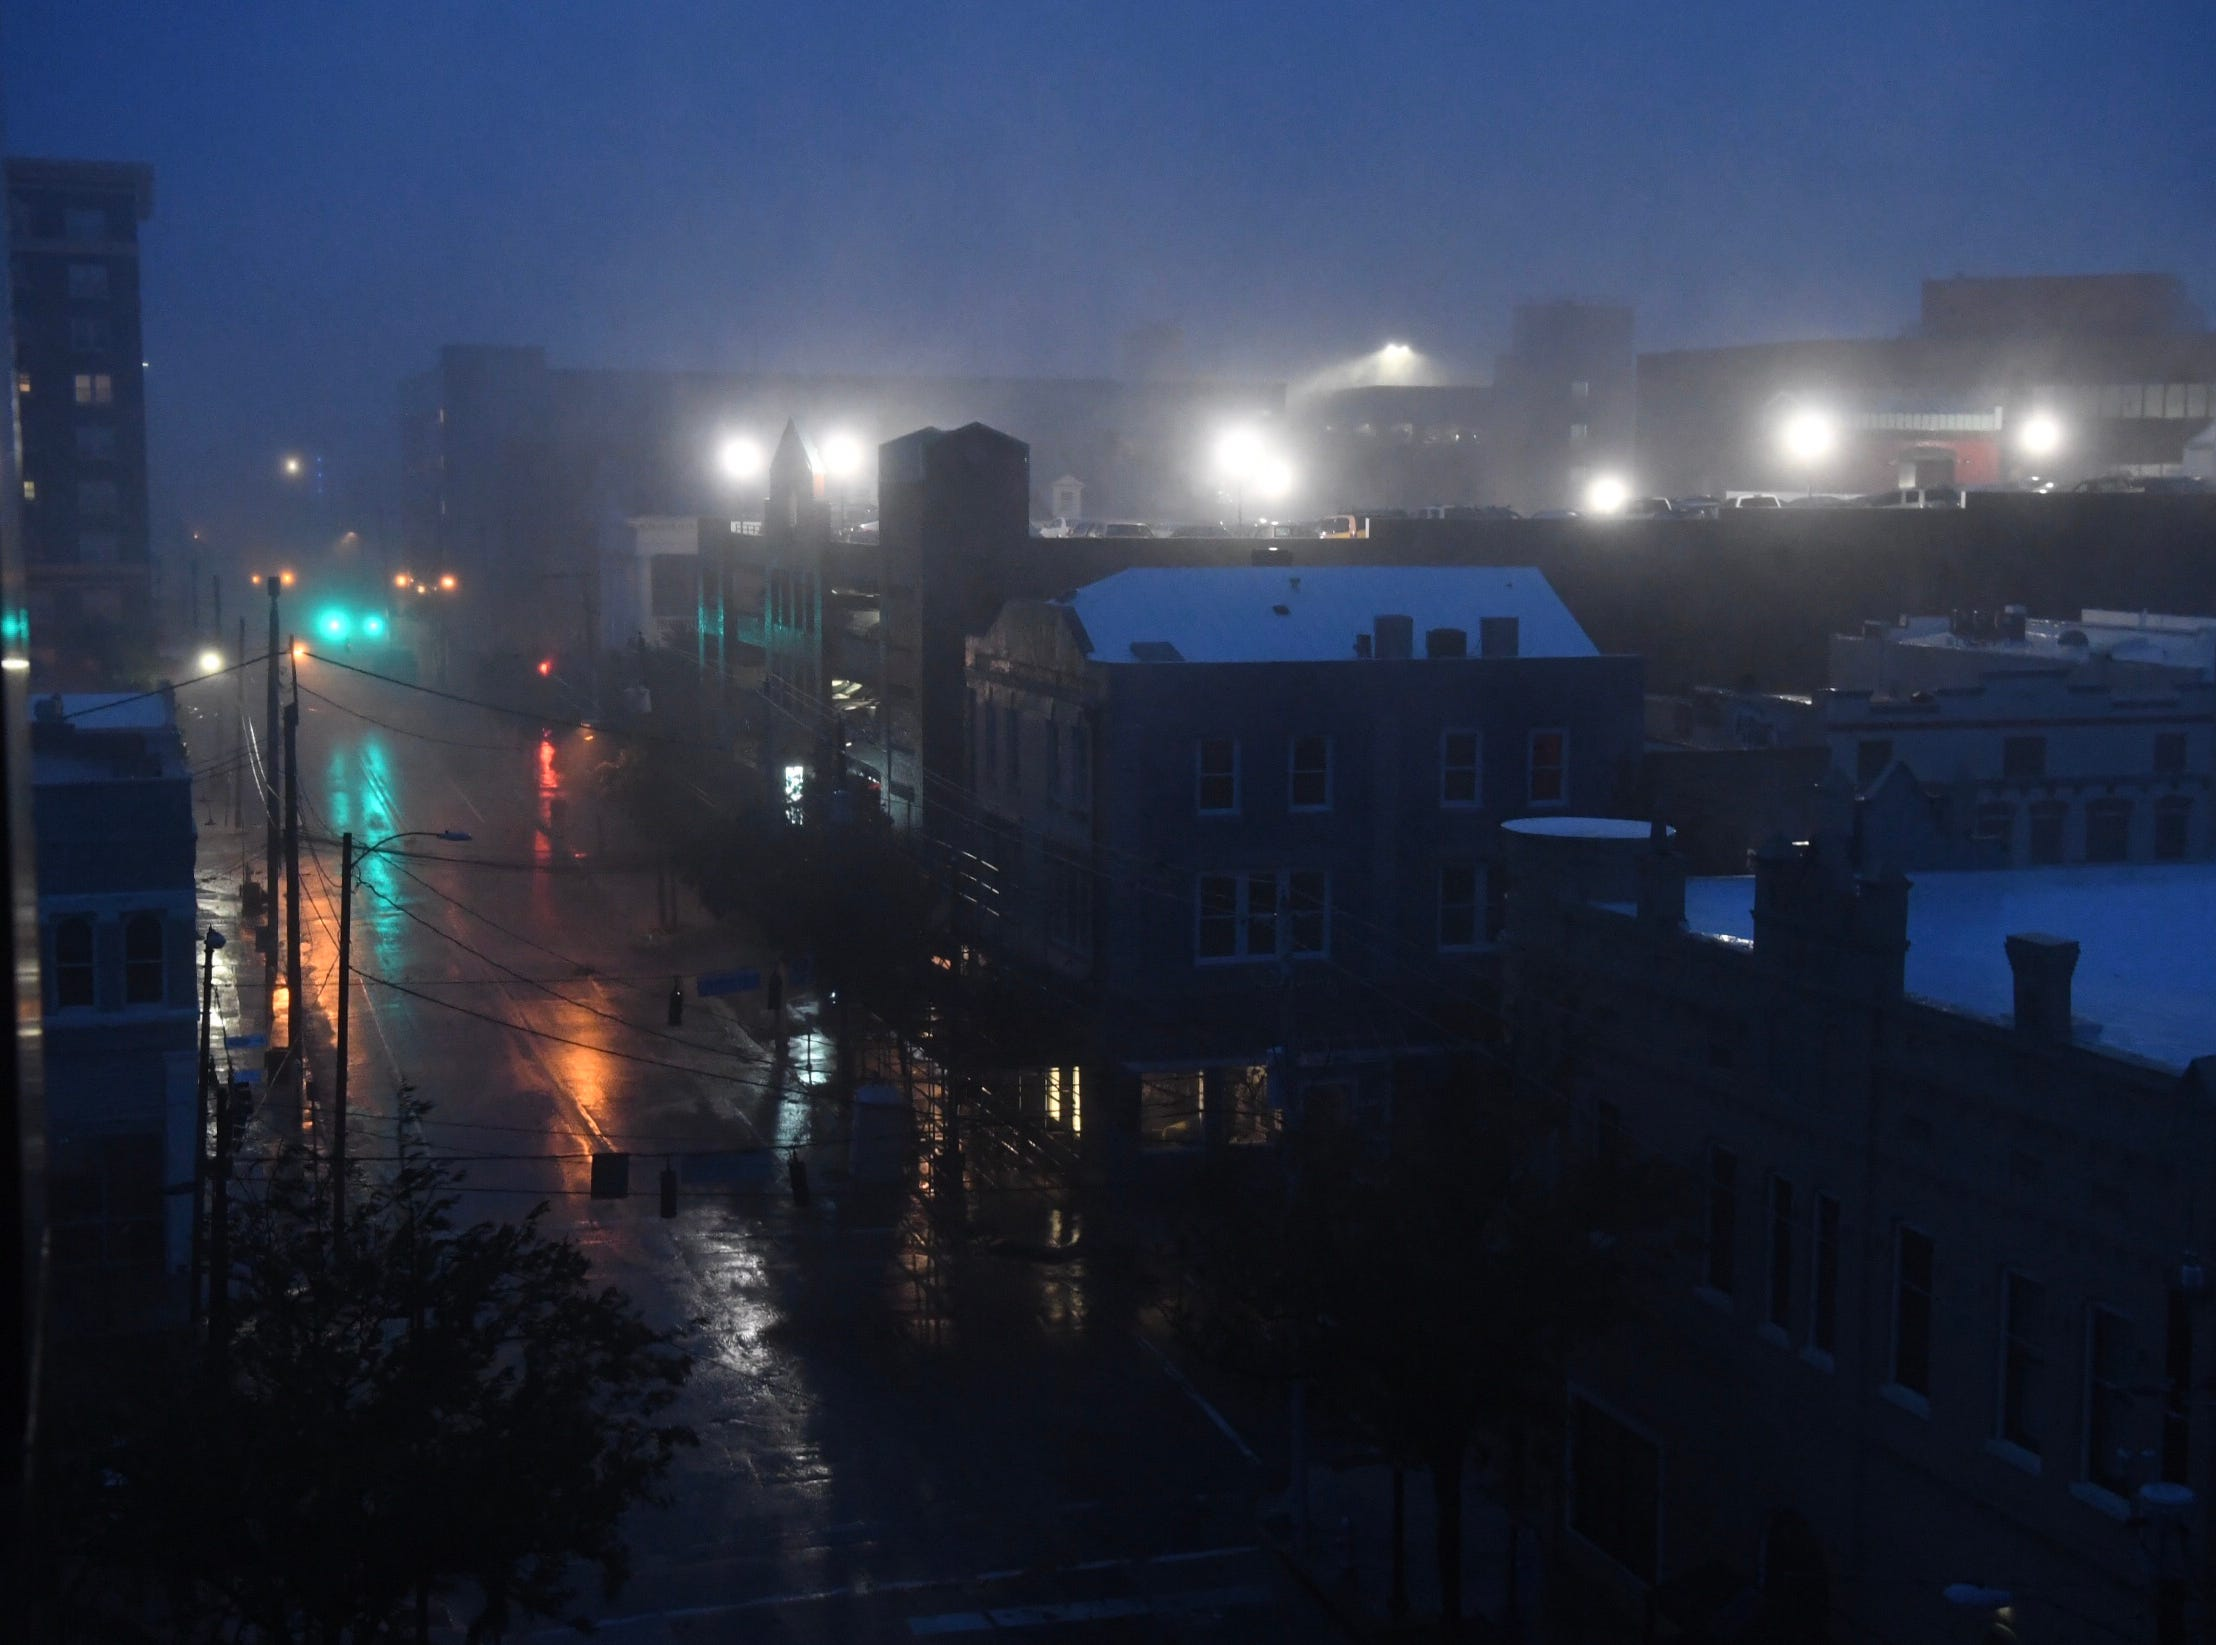 The streets of Wilmington, North Carolina, were expectedly deserted awaiting Hurricane Florence's arrival on Friday, Sept. 14, 2018. Strong winds and sheets of rain fell on the this coastal town.